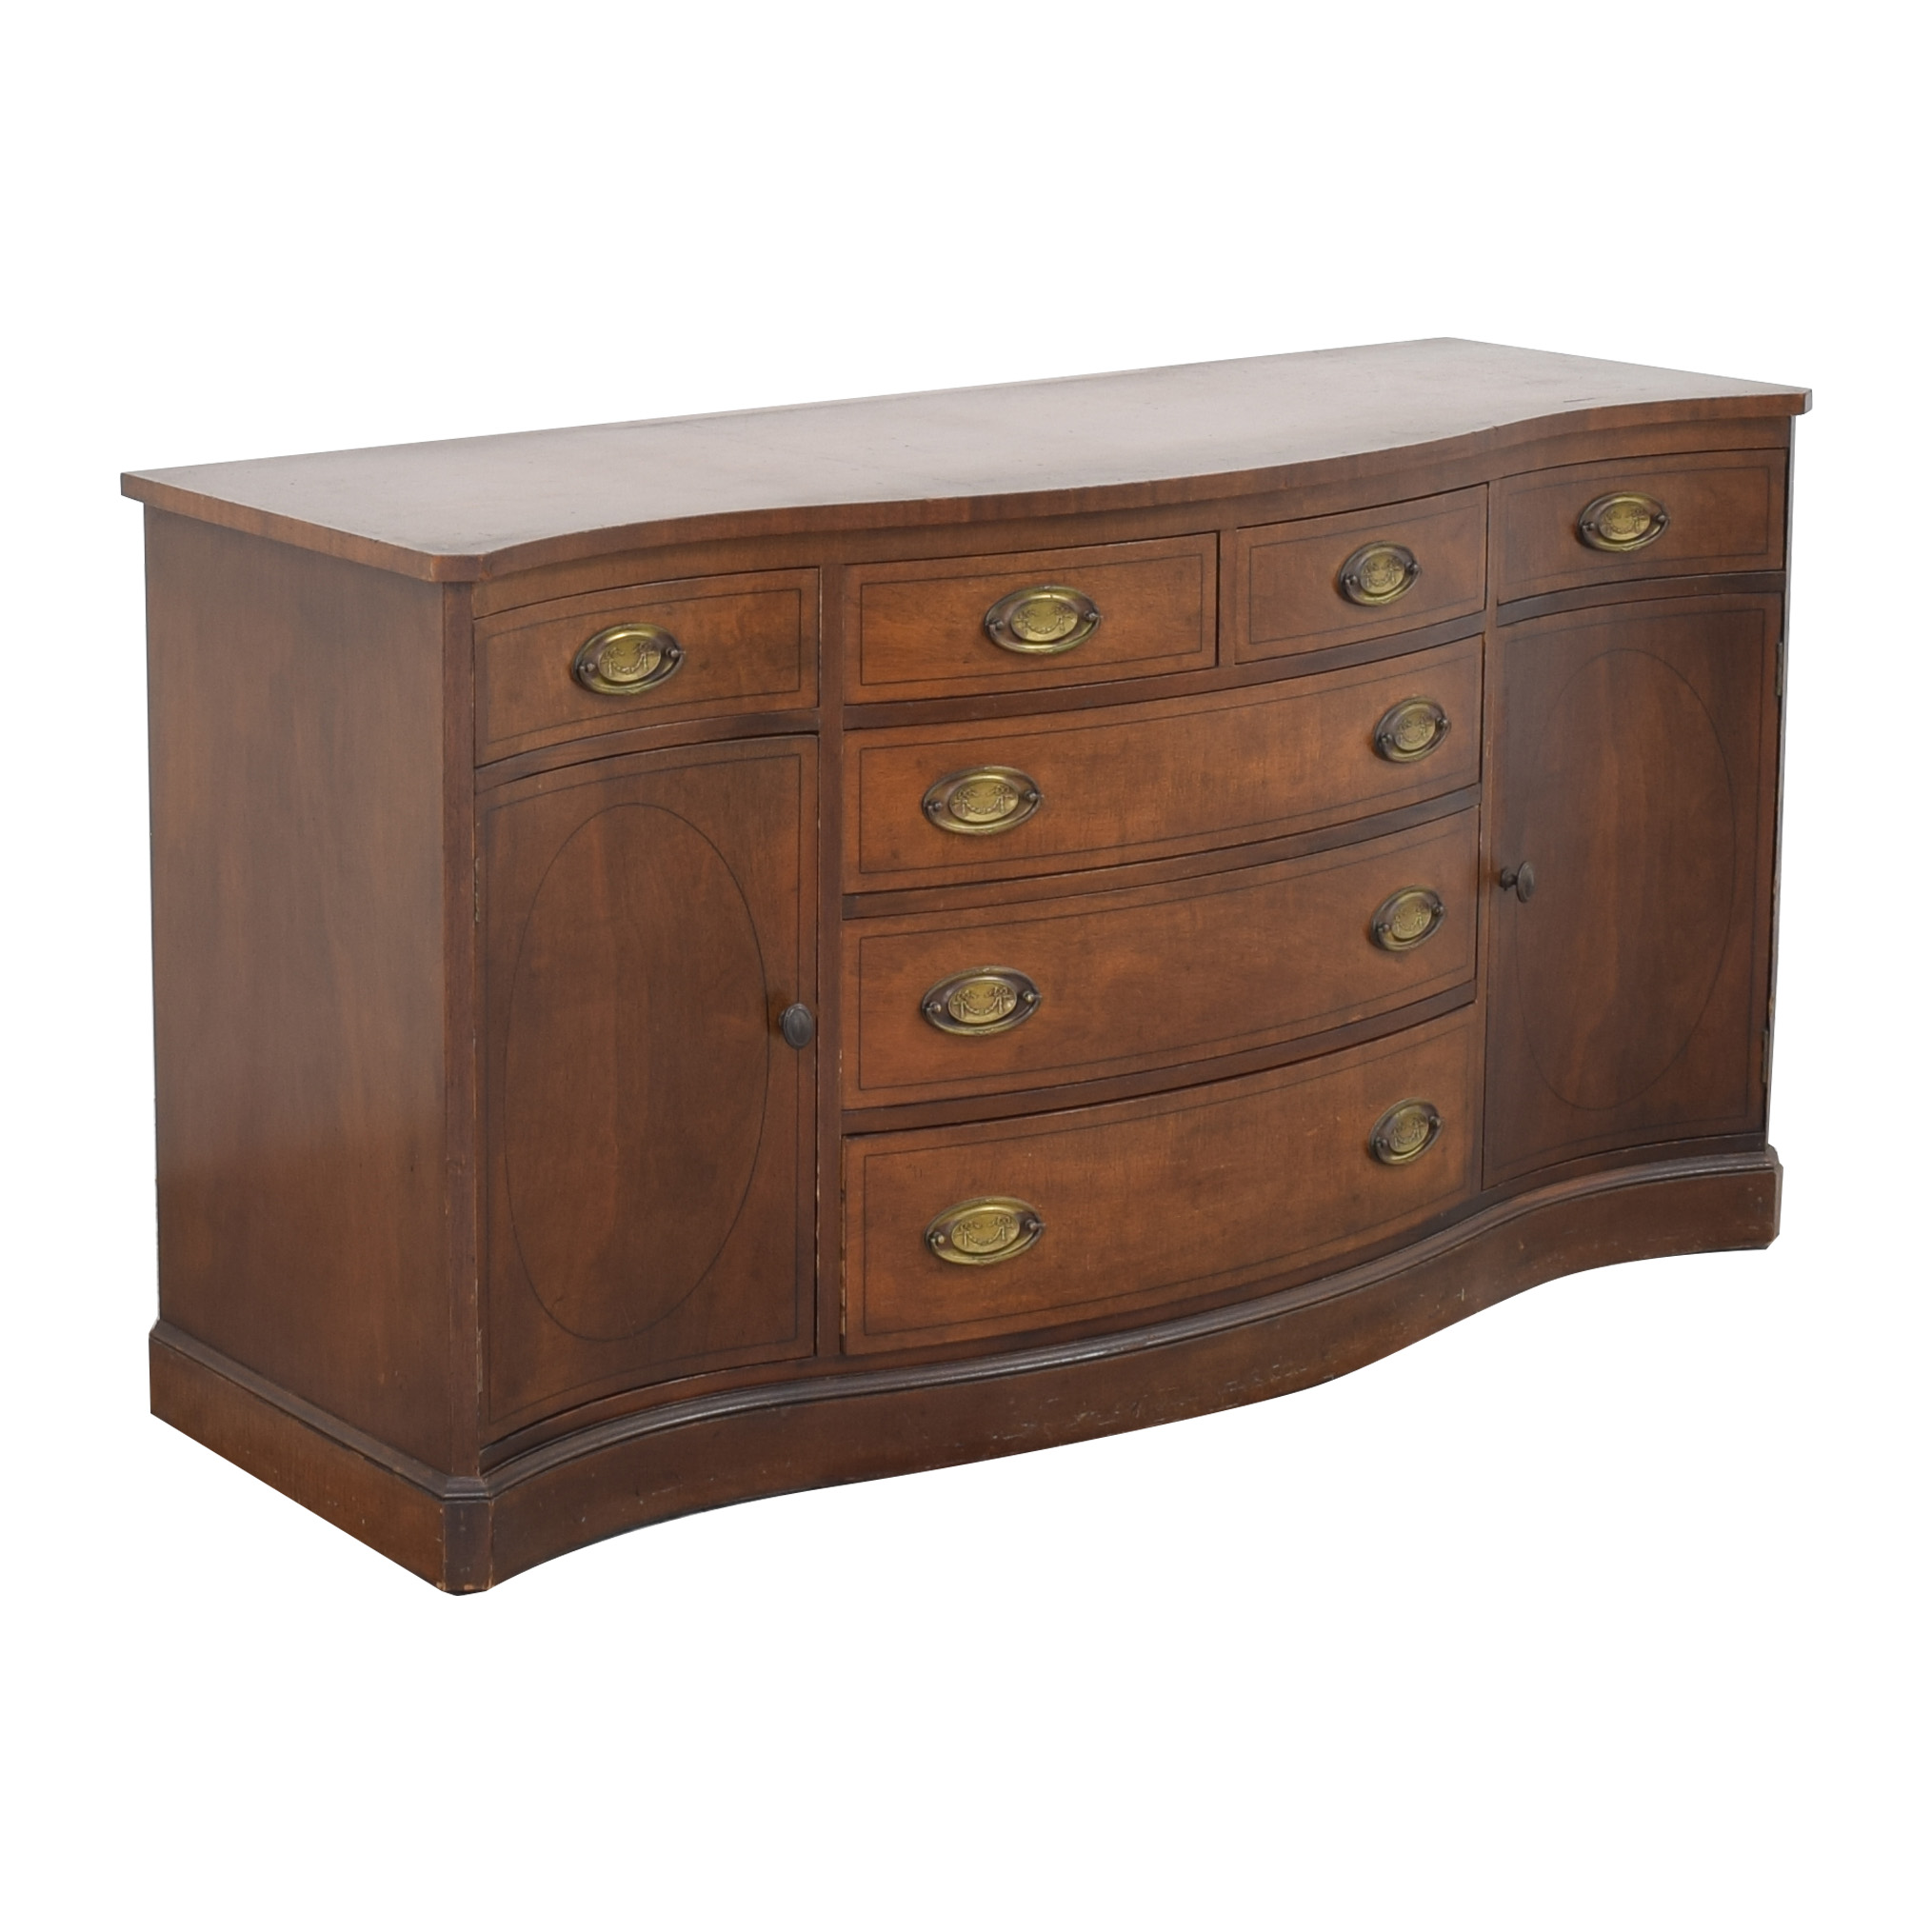 Henredon Furniture Vintage Henredon Heritage Buffet coupon